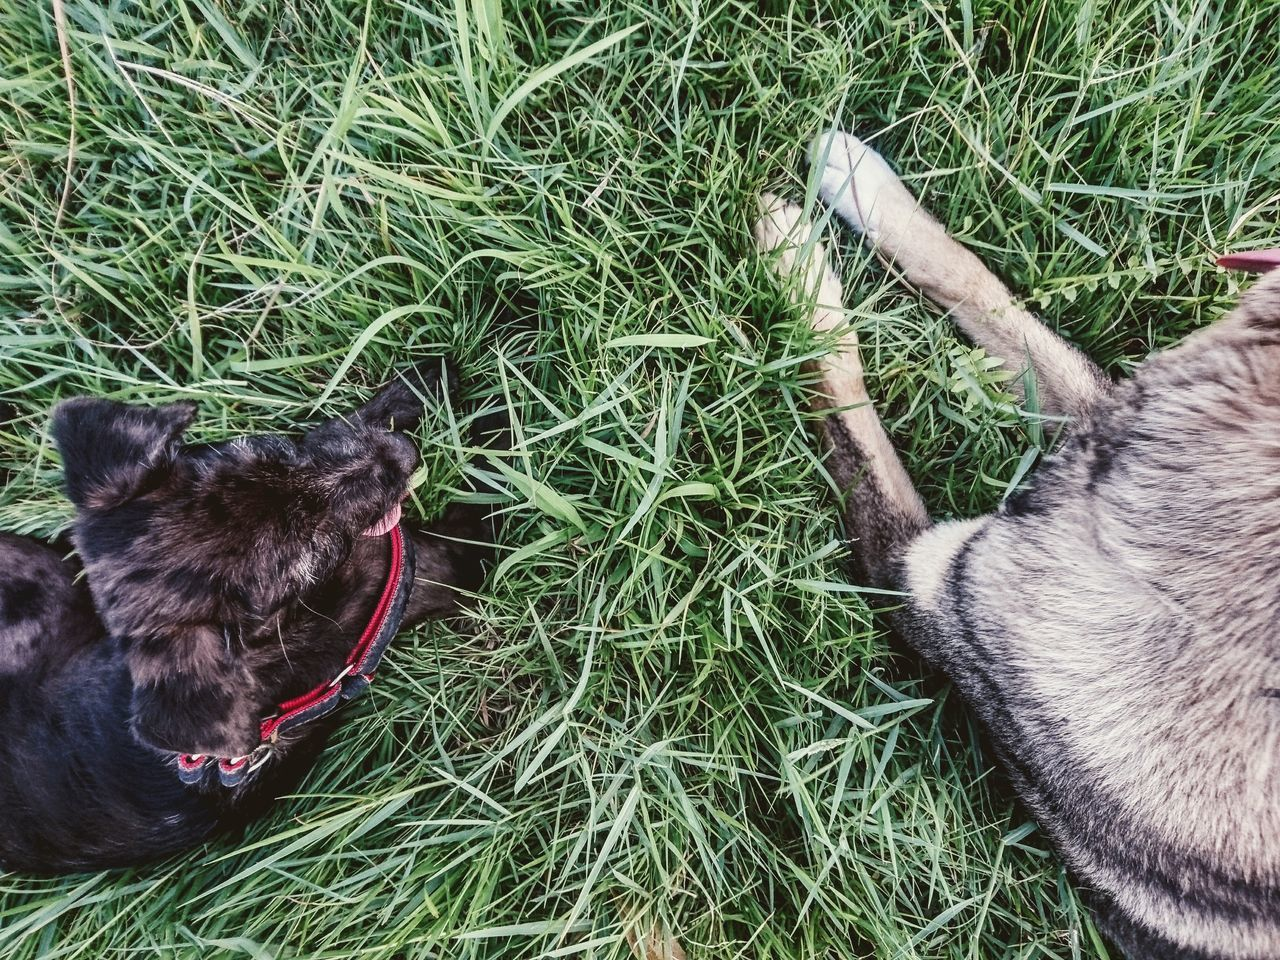 grass, dog, pets, animal themes, domestic animals, one animal, mammal, high angle view, field, day, no people, outdoors, friendship, nature, close-up